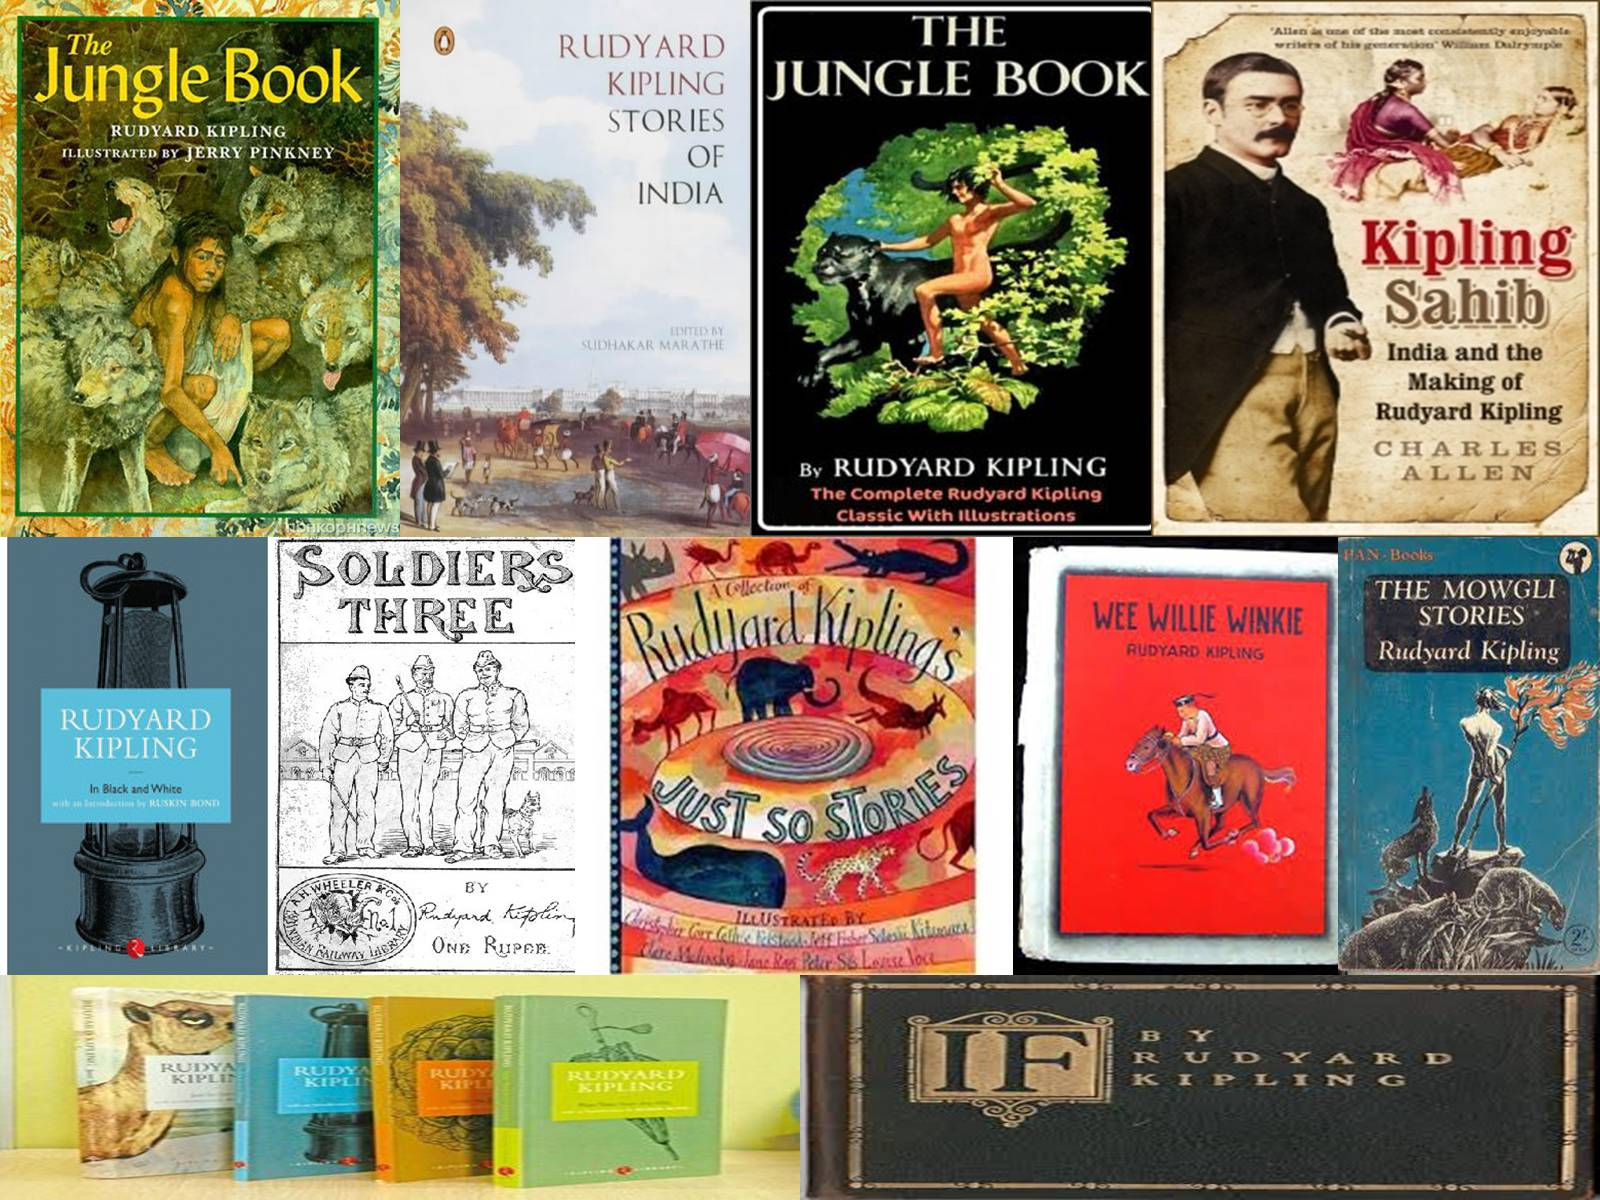 the life and books of rudyard kipling Complete order of rudyard kipling books in publication order and chronological order.